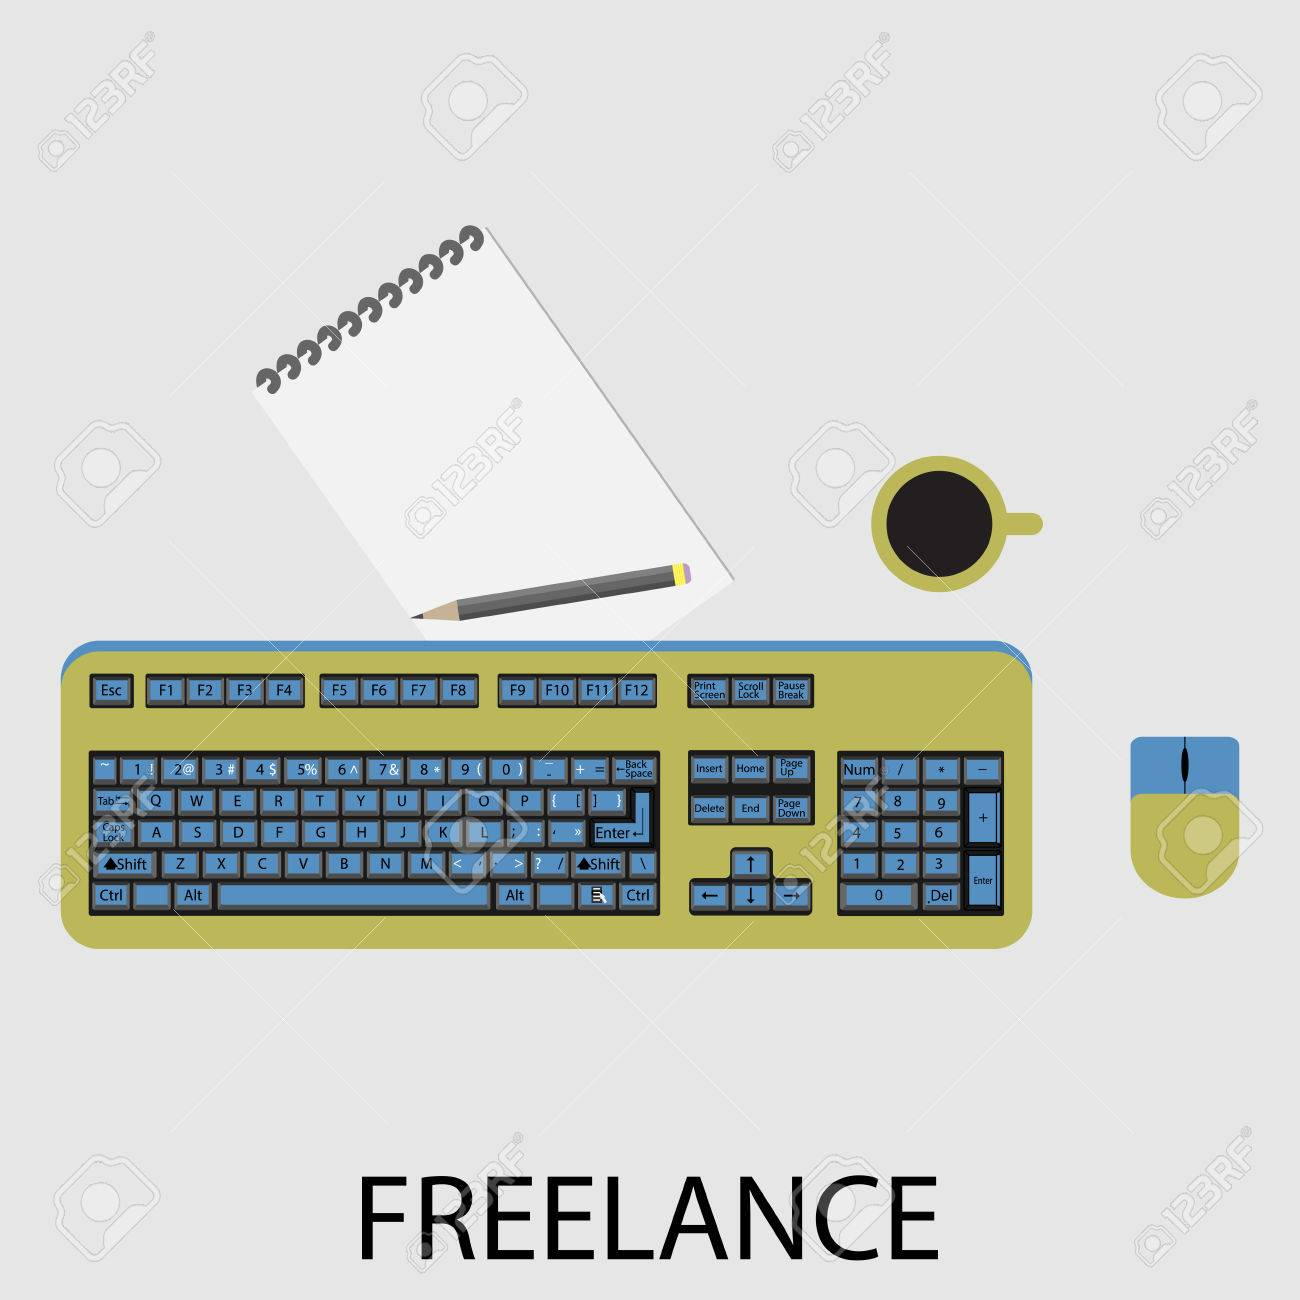 Freelance Icon Flat Design Development And Computer Process Royalty Free Cliparts Vectors And Stock Illustration Image 51619576